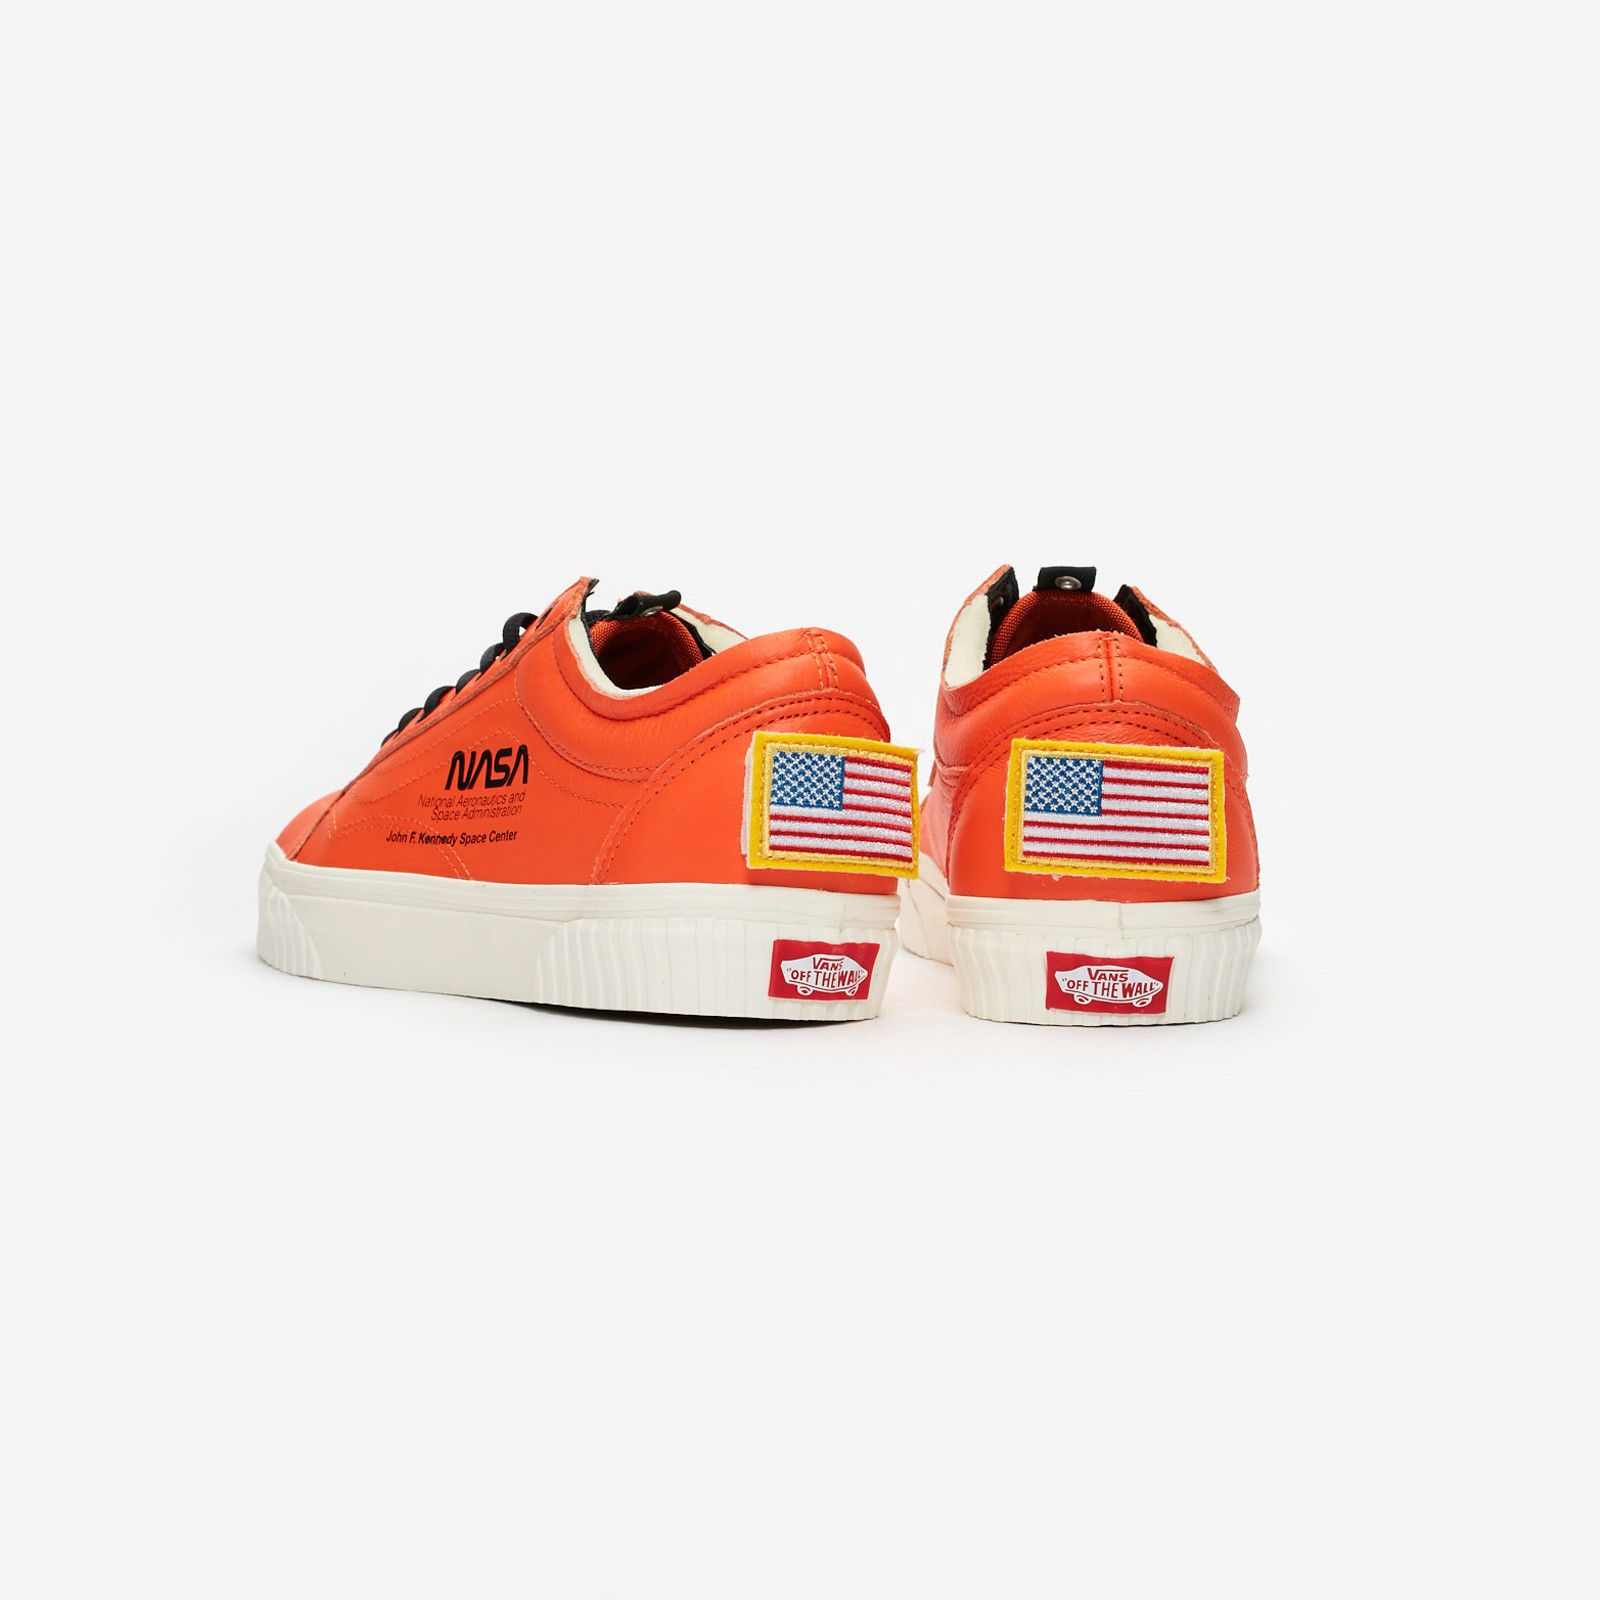 Pin on Sneakers, trainers, sneakerheads